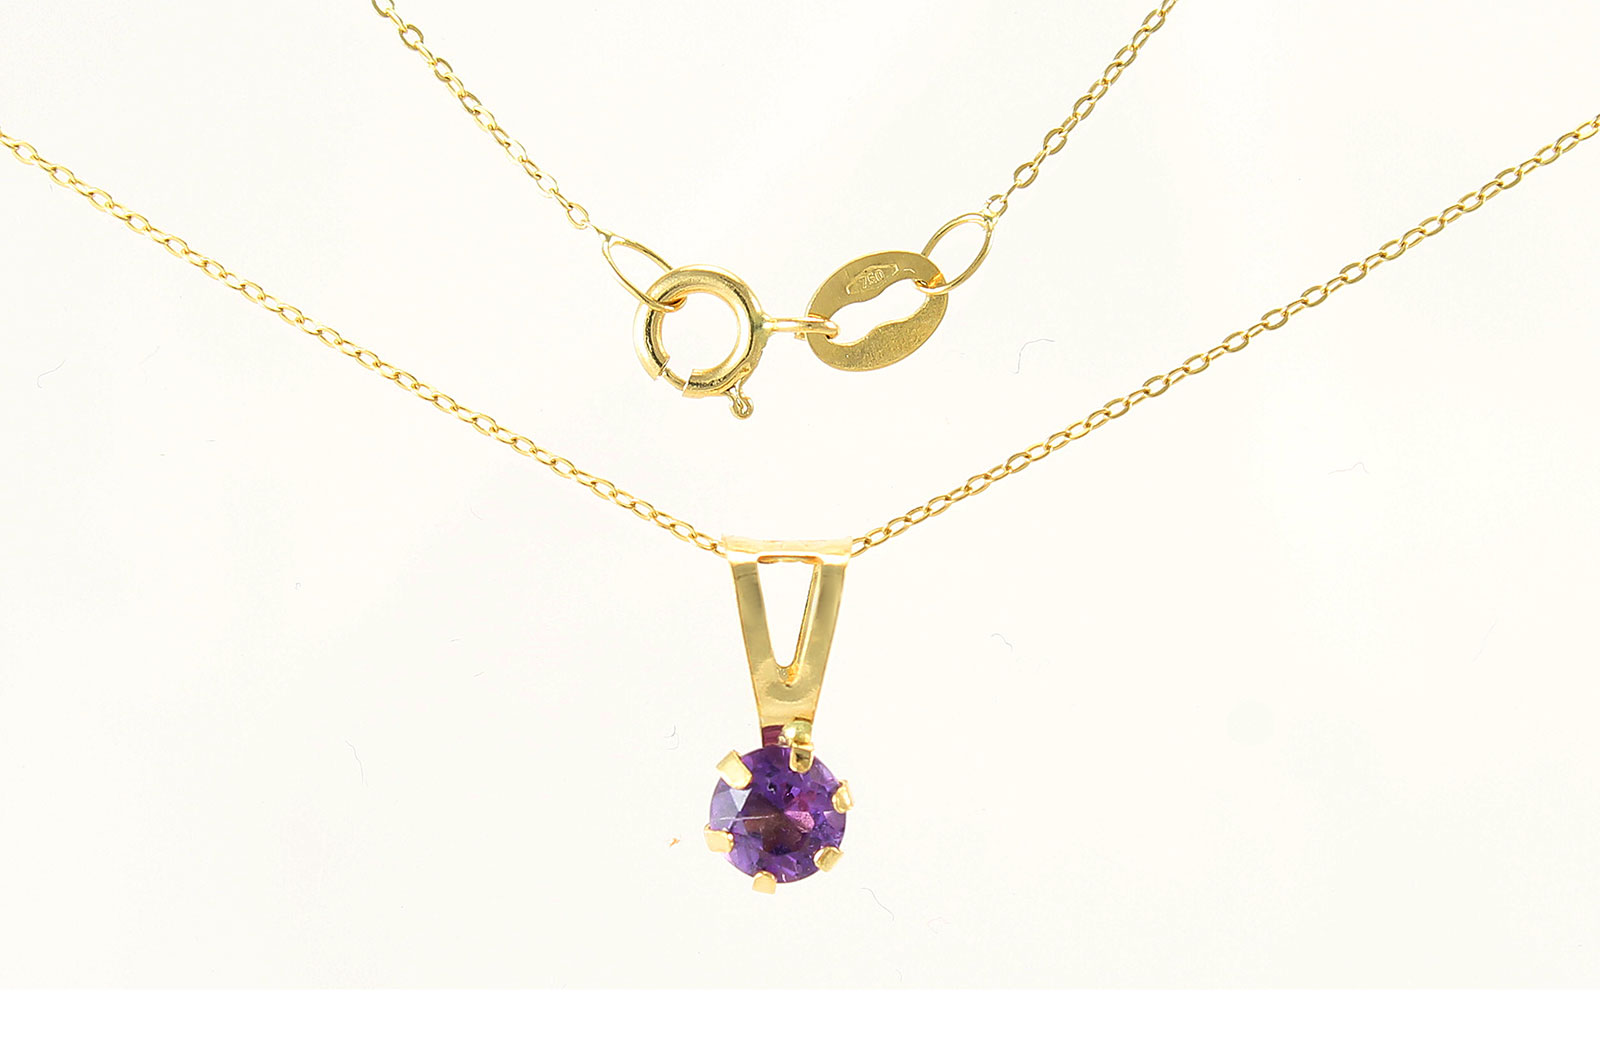 VP Jewels: 4mm Genuine Amethyst Solitaire Pendant + Chain